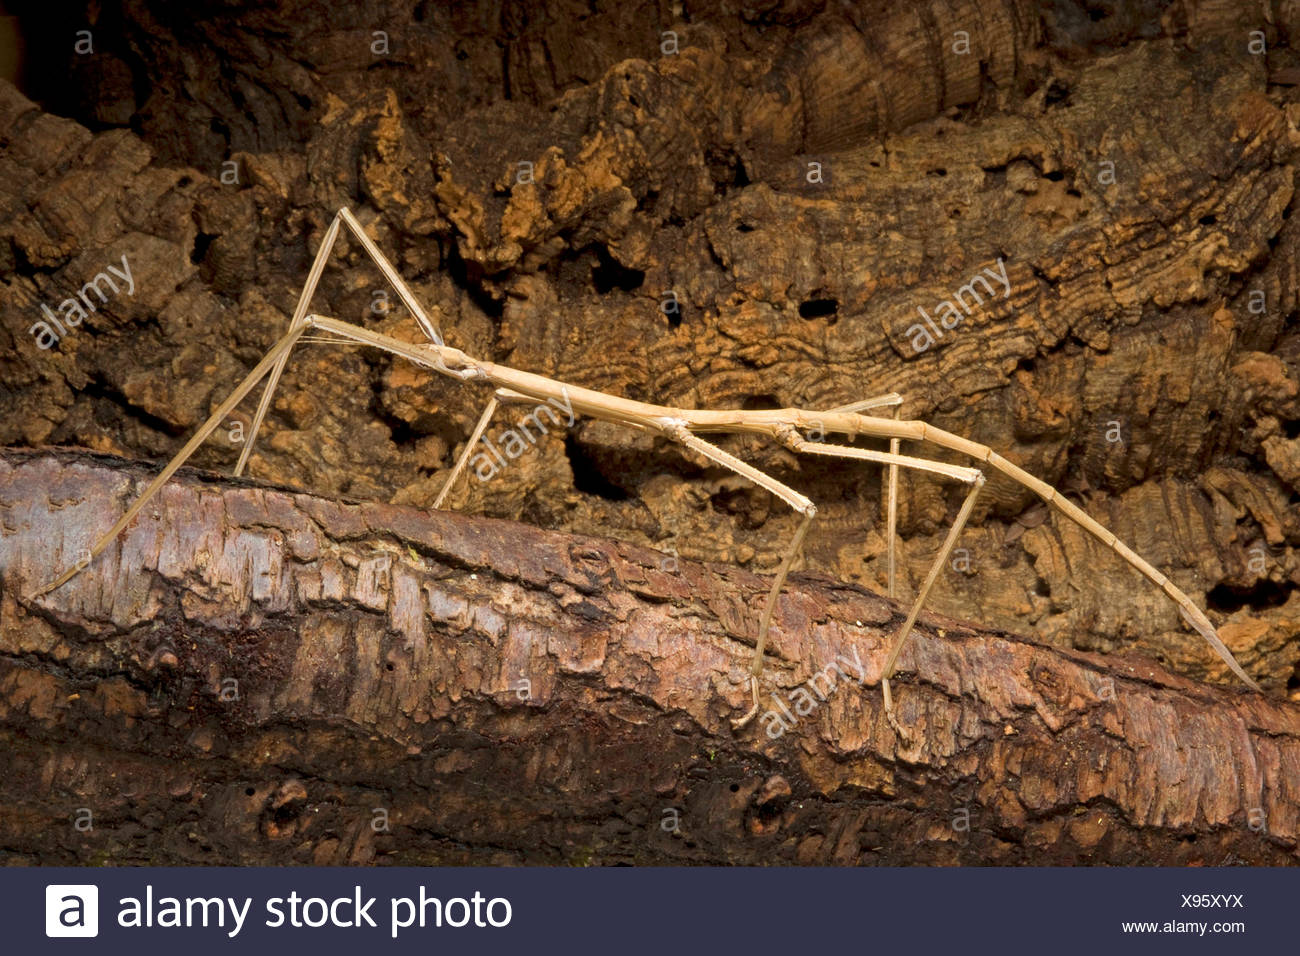 Giant stick insect (Phobaeticus magnus), on a branch Stock Photo